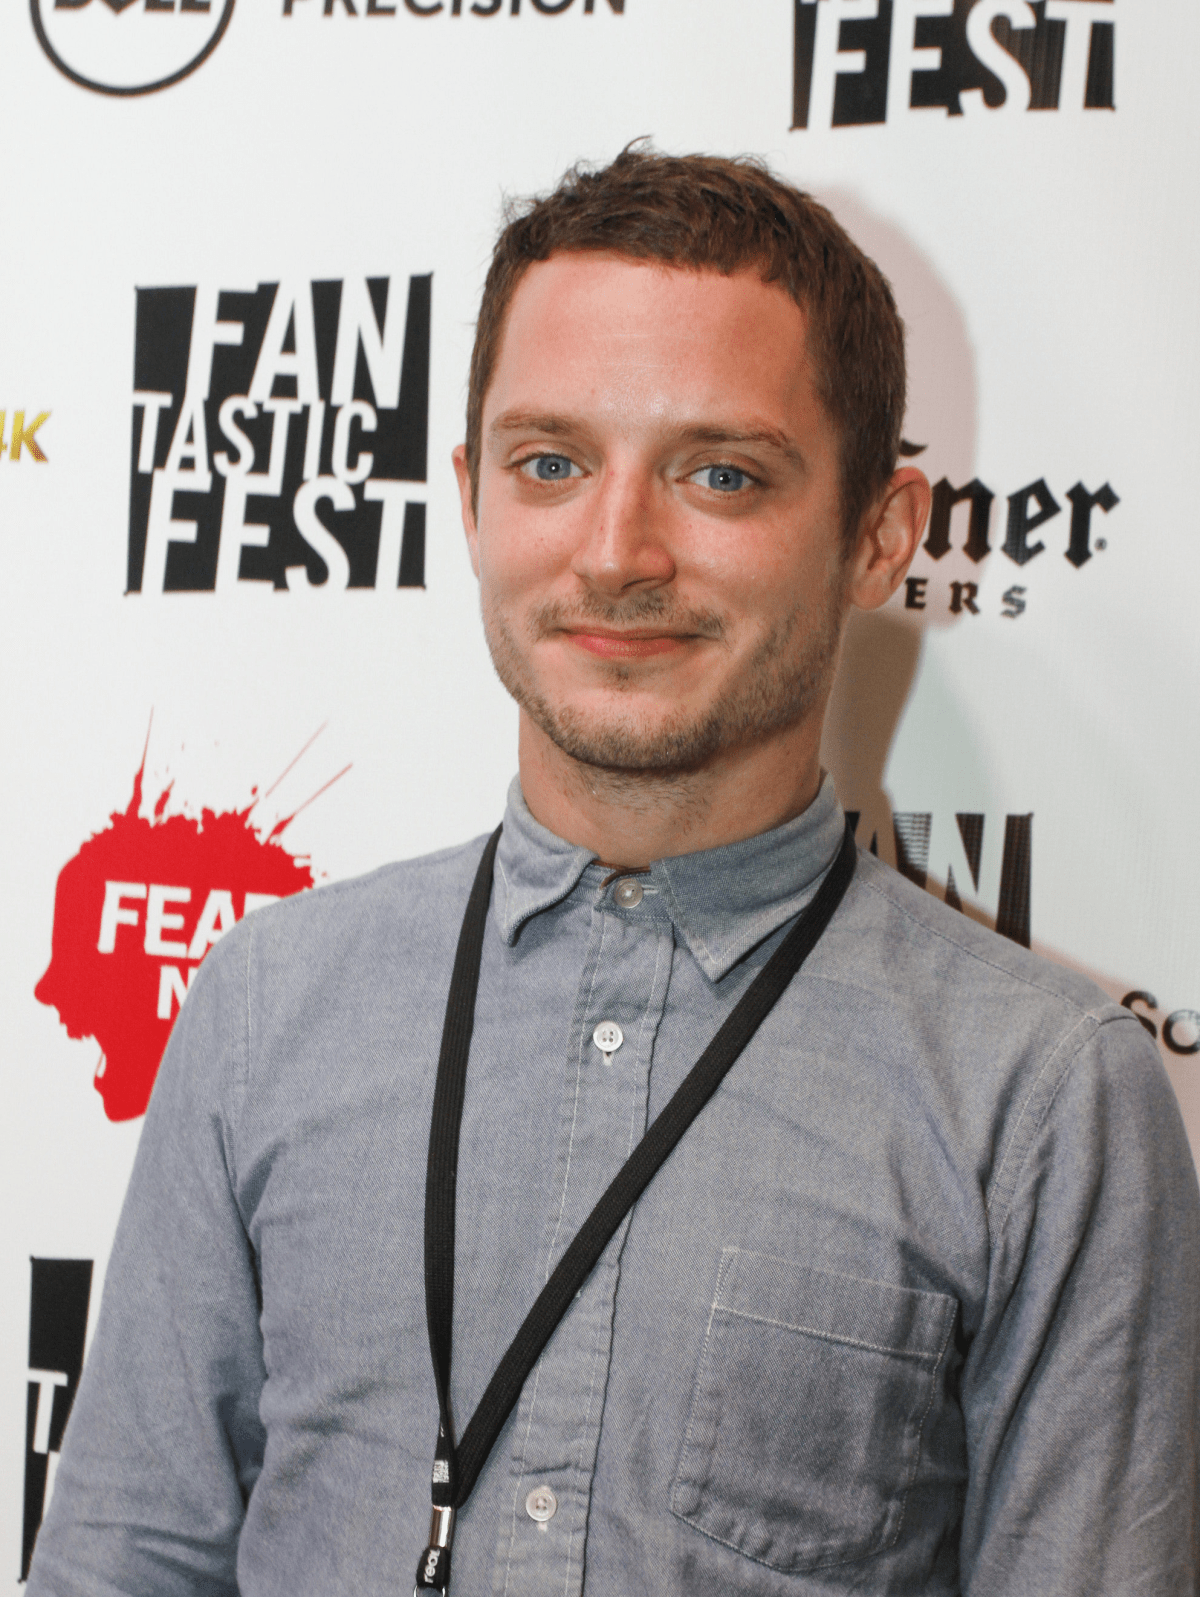 Elijah Wood at red carpet premiere of Grand Piano at Fantastic Fest